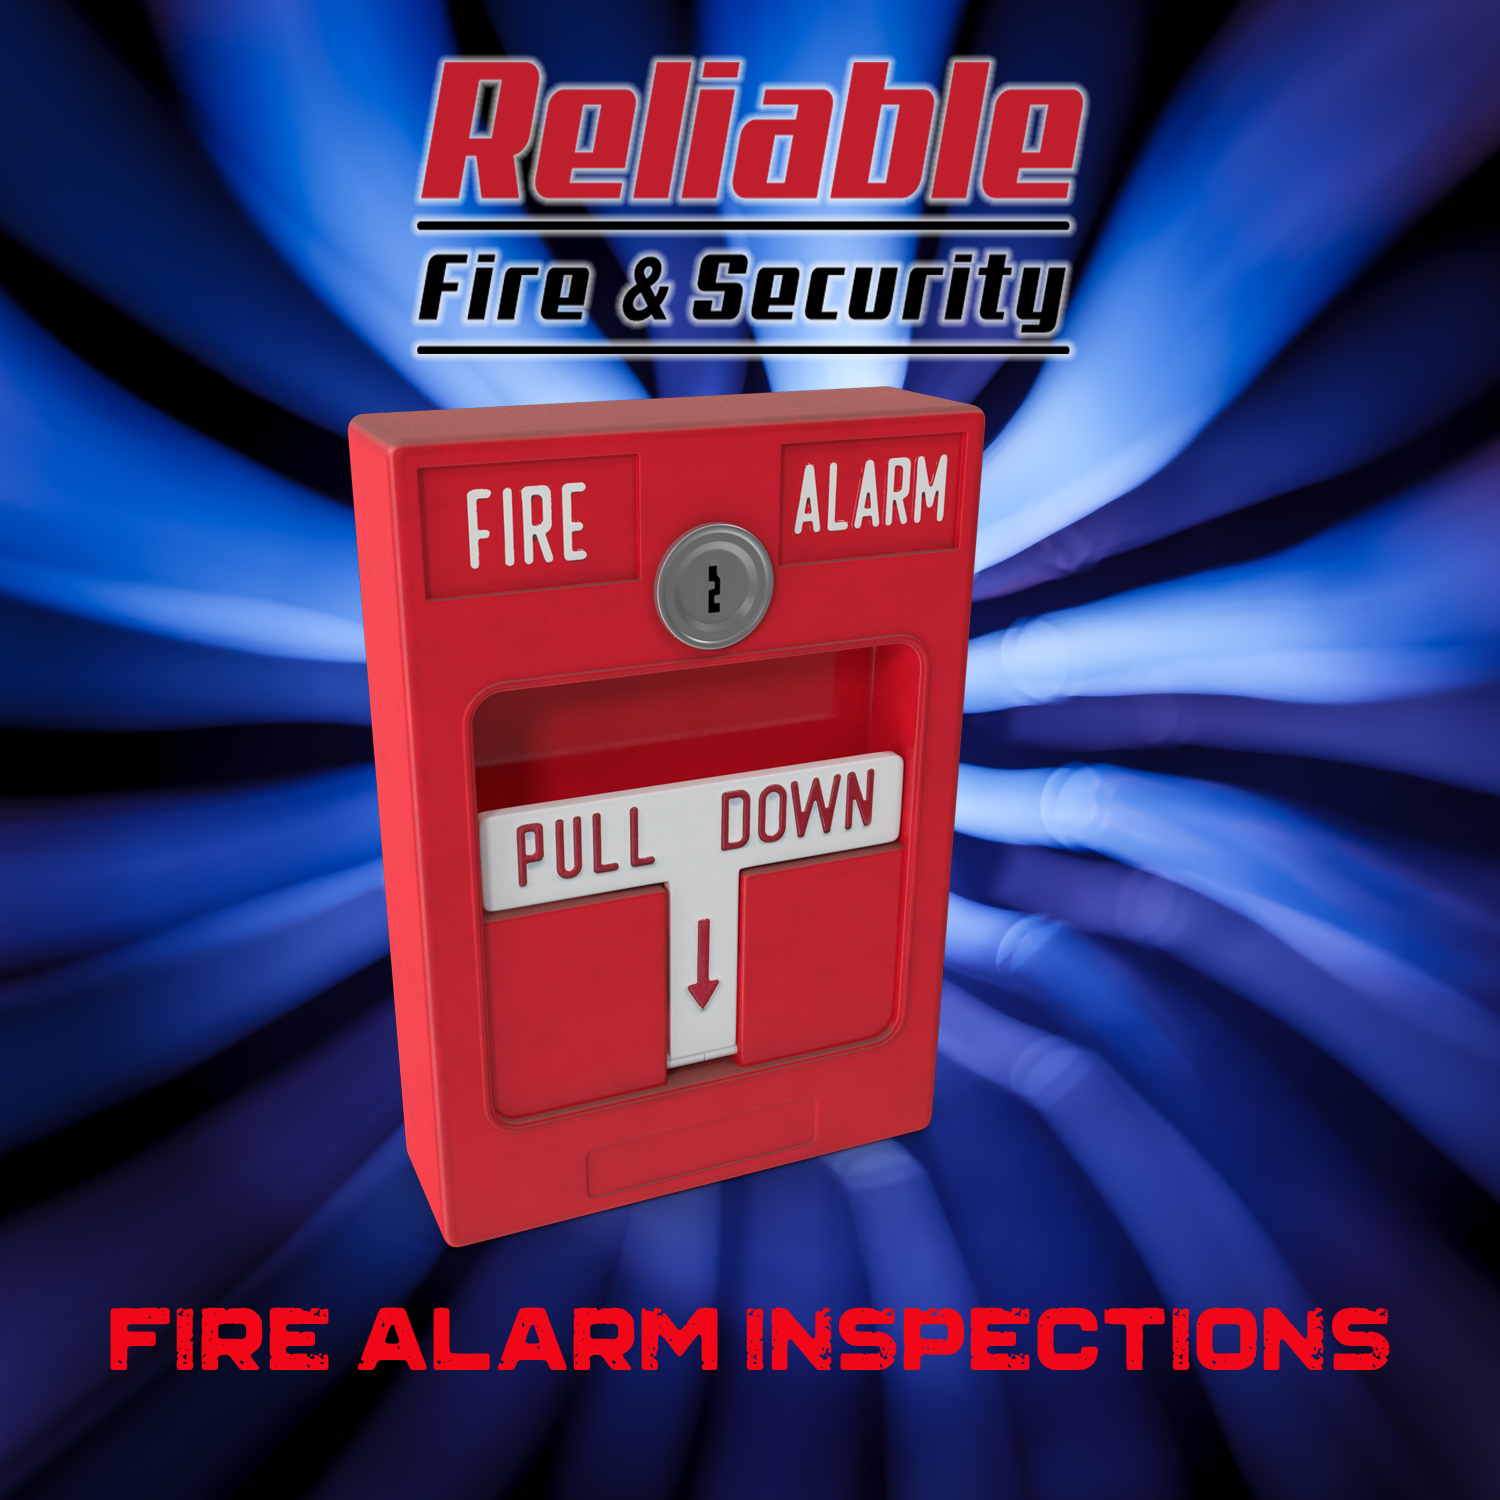 Fire Alarms Life Safety Fire Alarm Fire Alarm System Fire Protection